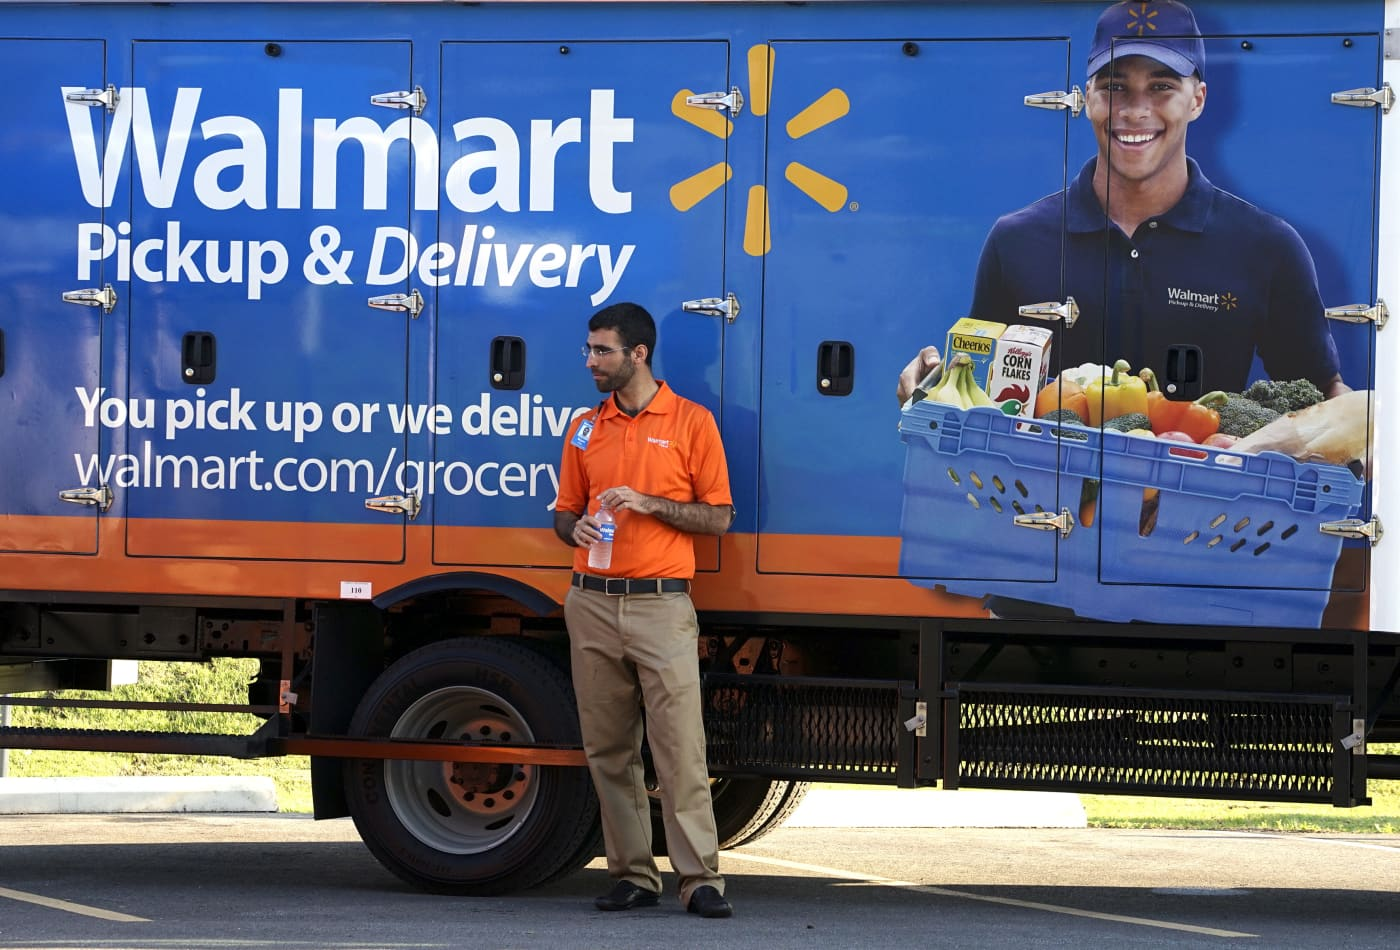 Amazon Walmart And Target Are Competing To Deliver Your Groceries Heres How Their Offers Stack Up